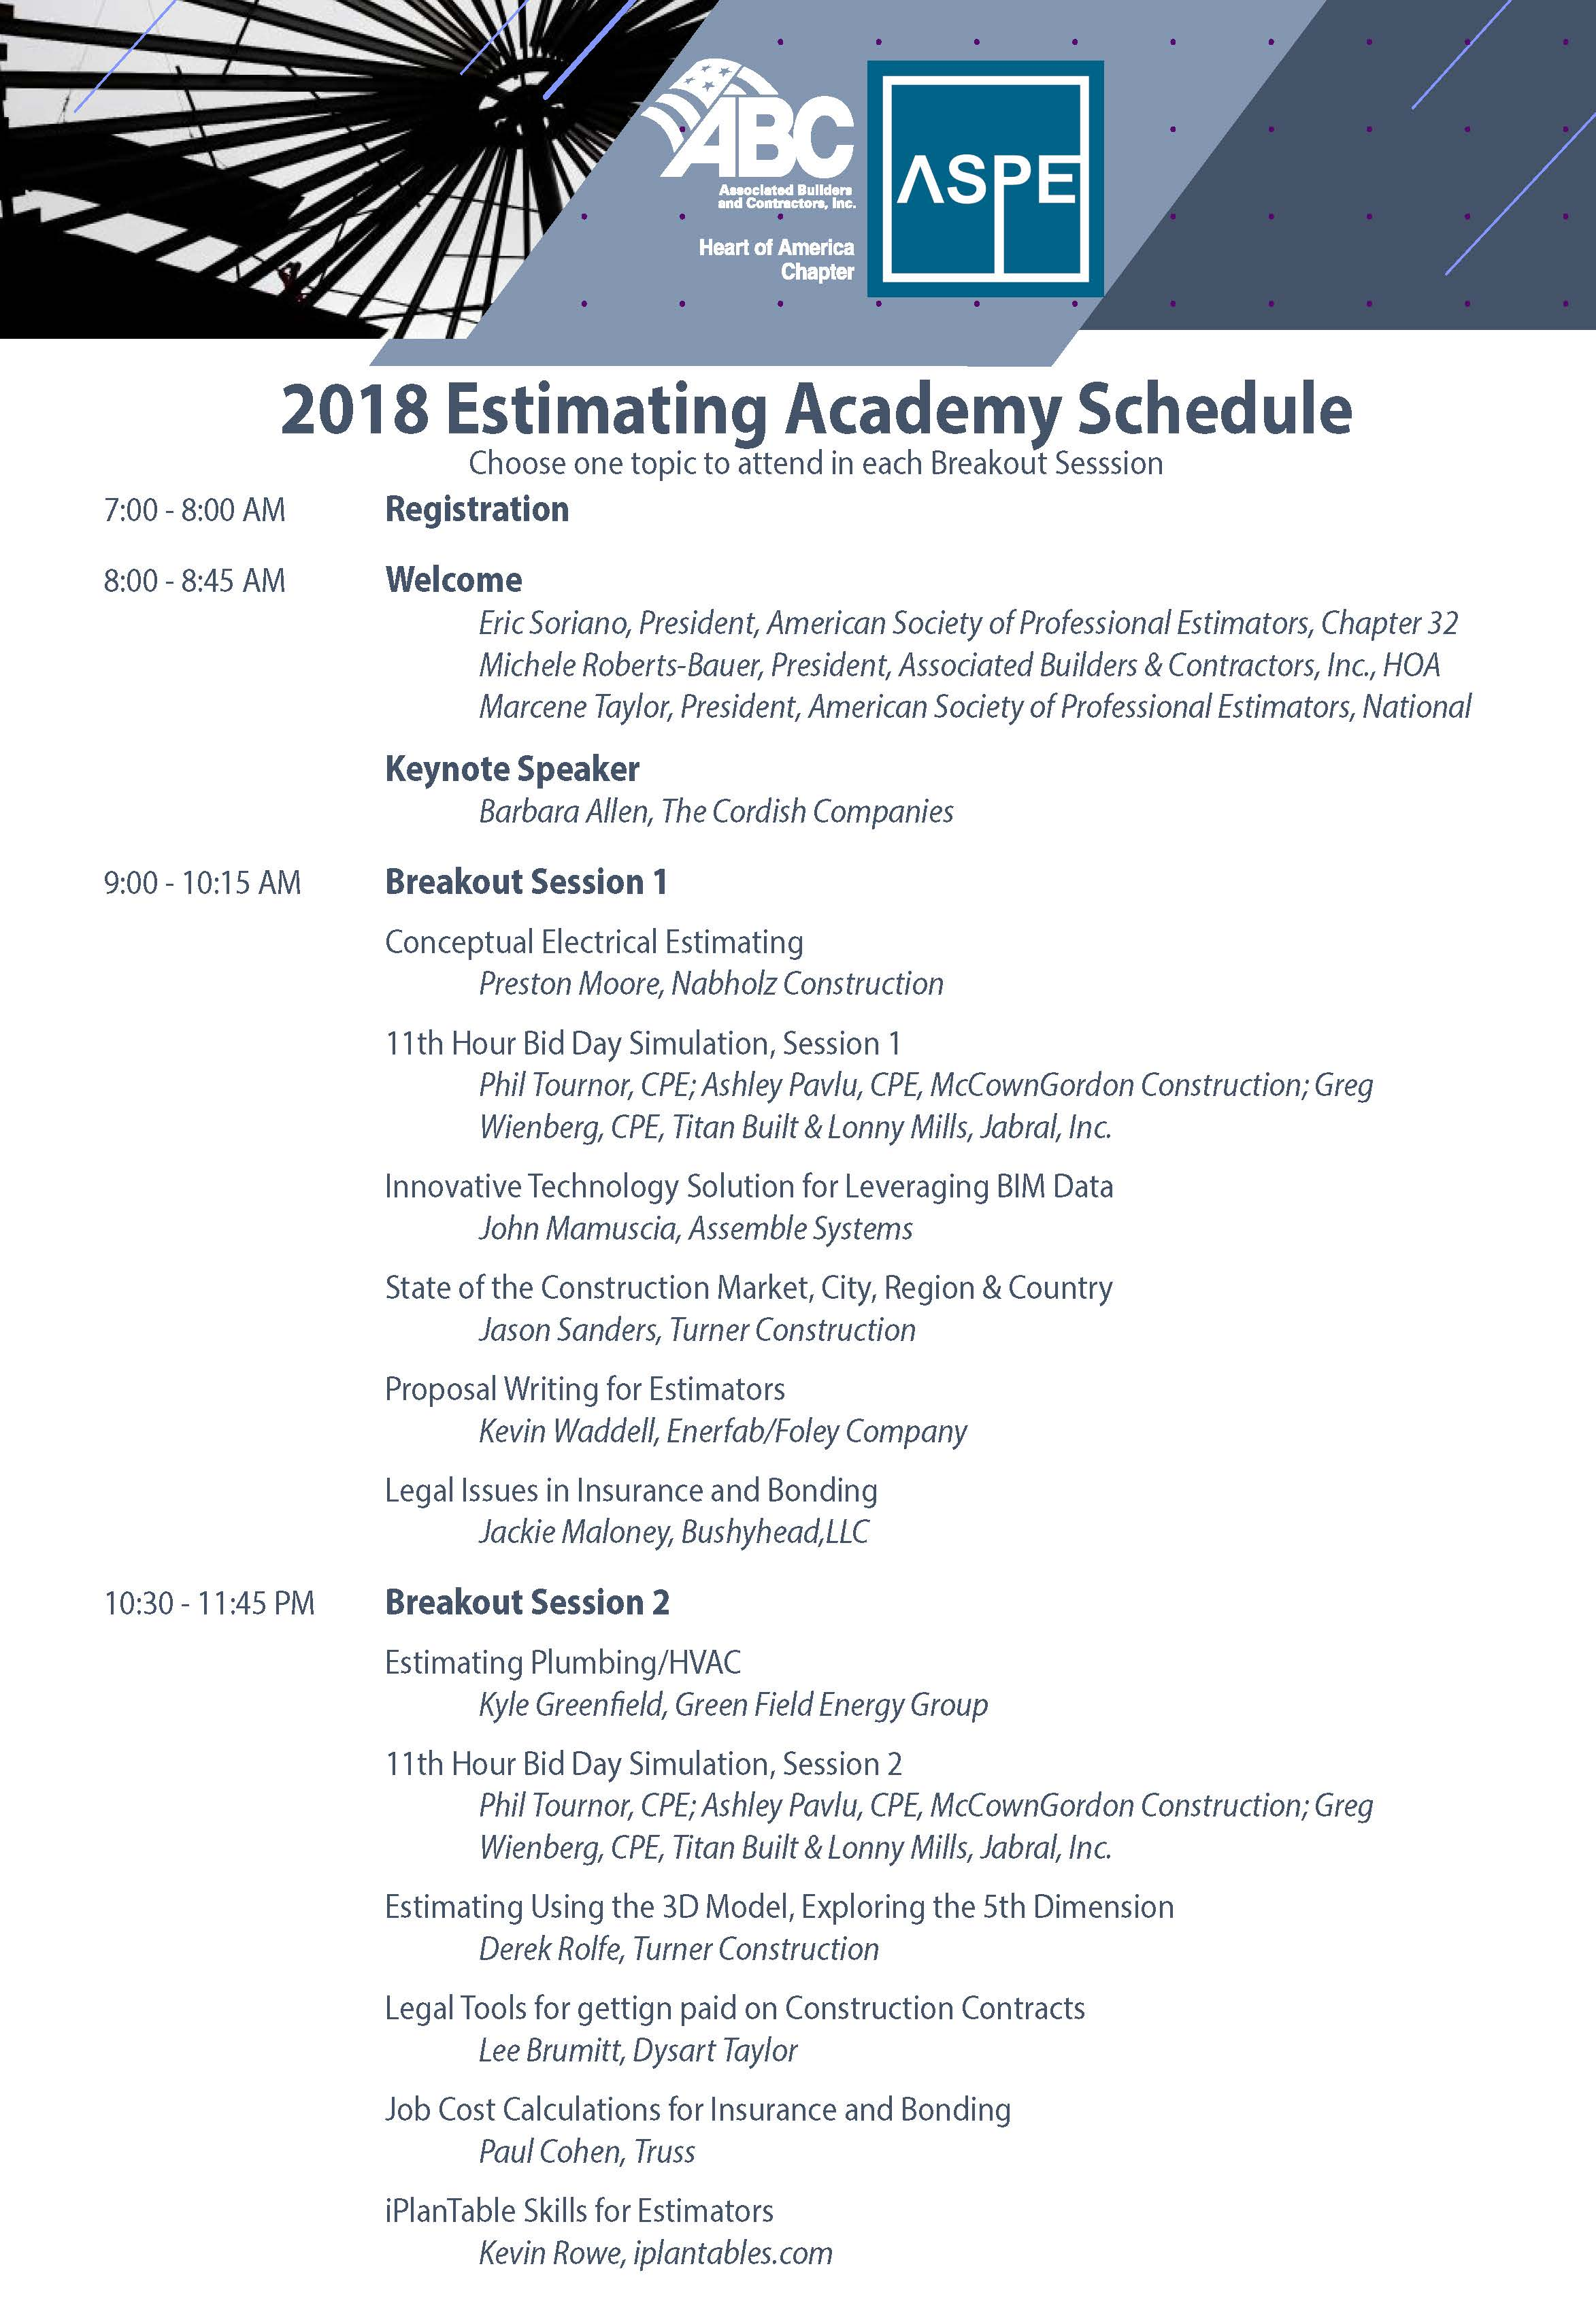 02.01.18 ASPE & ABC Estimating Academy Schedule_Page_2.jpg